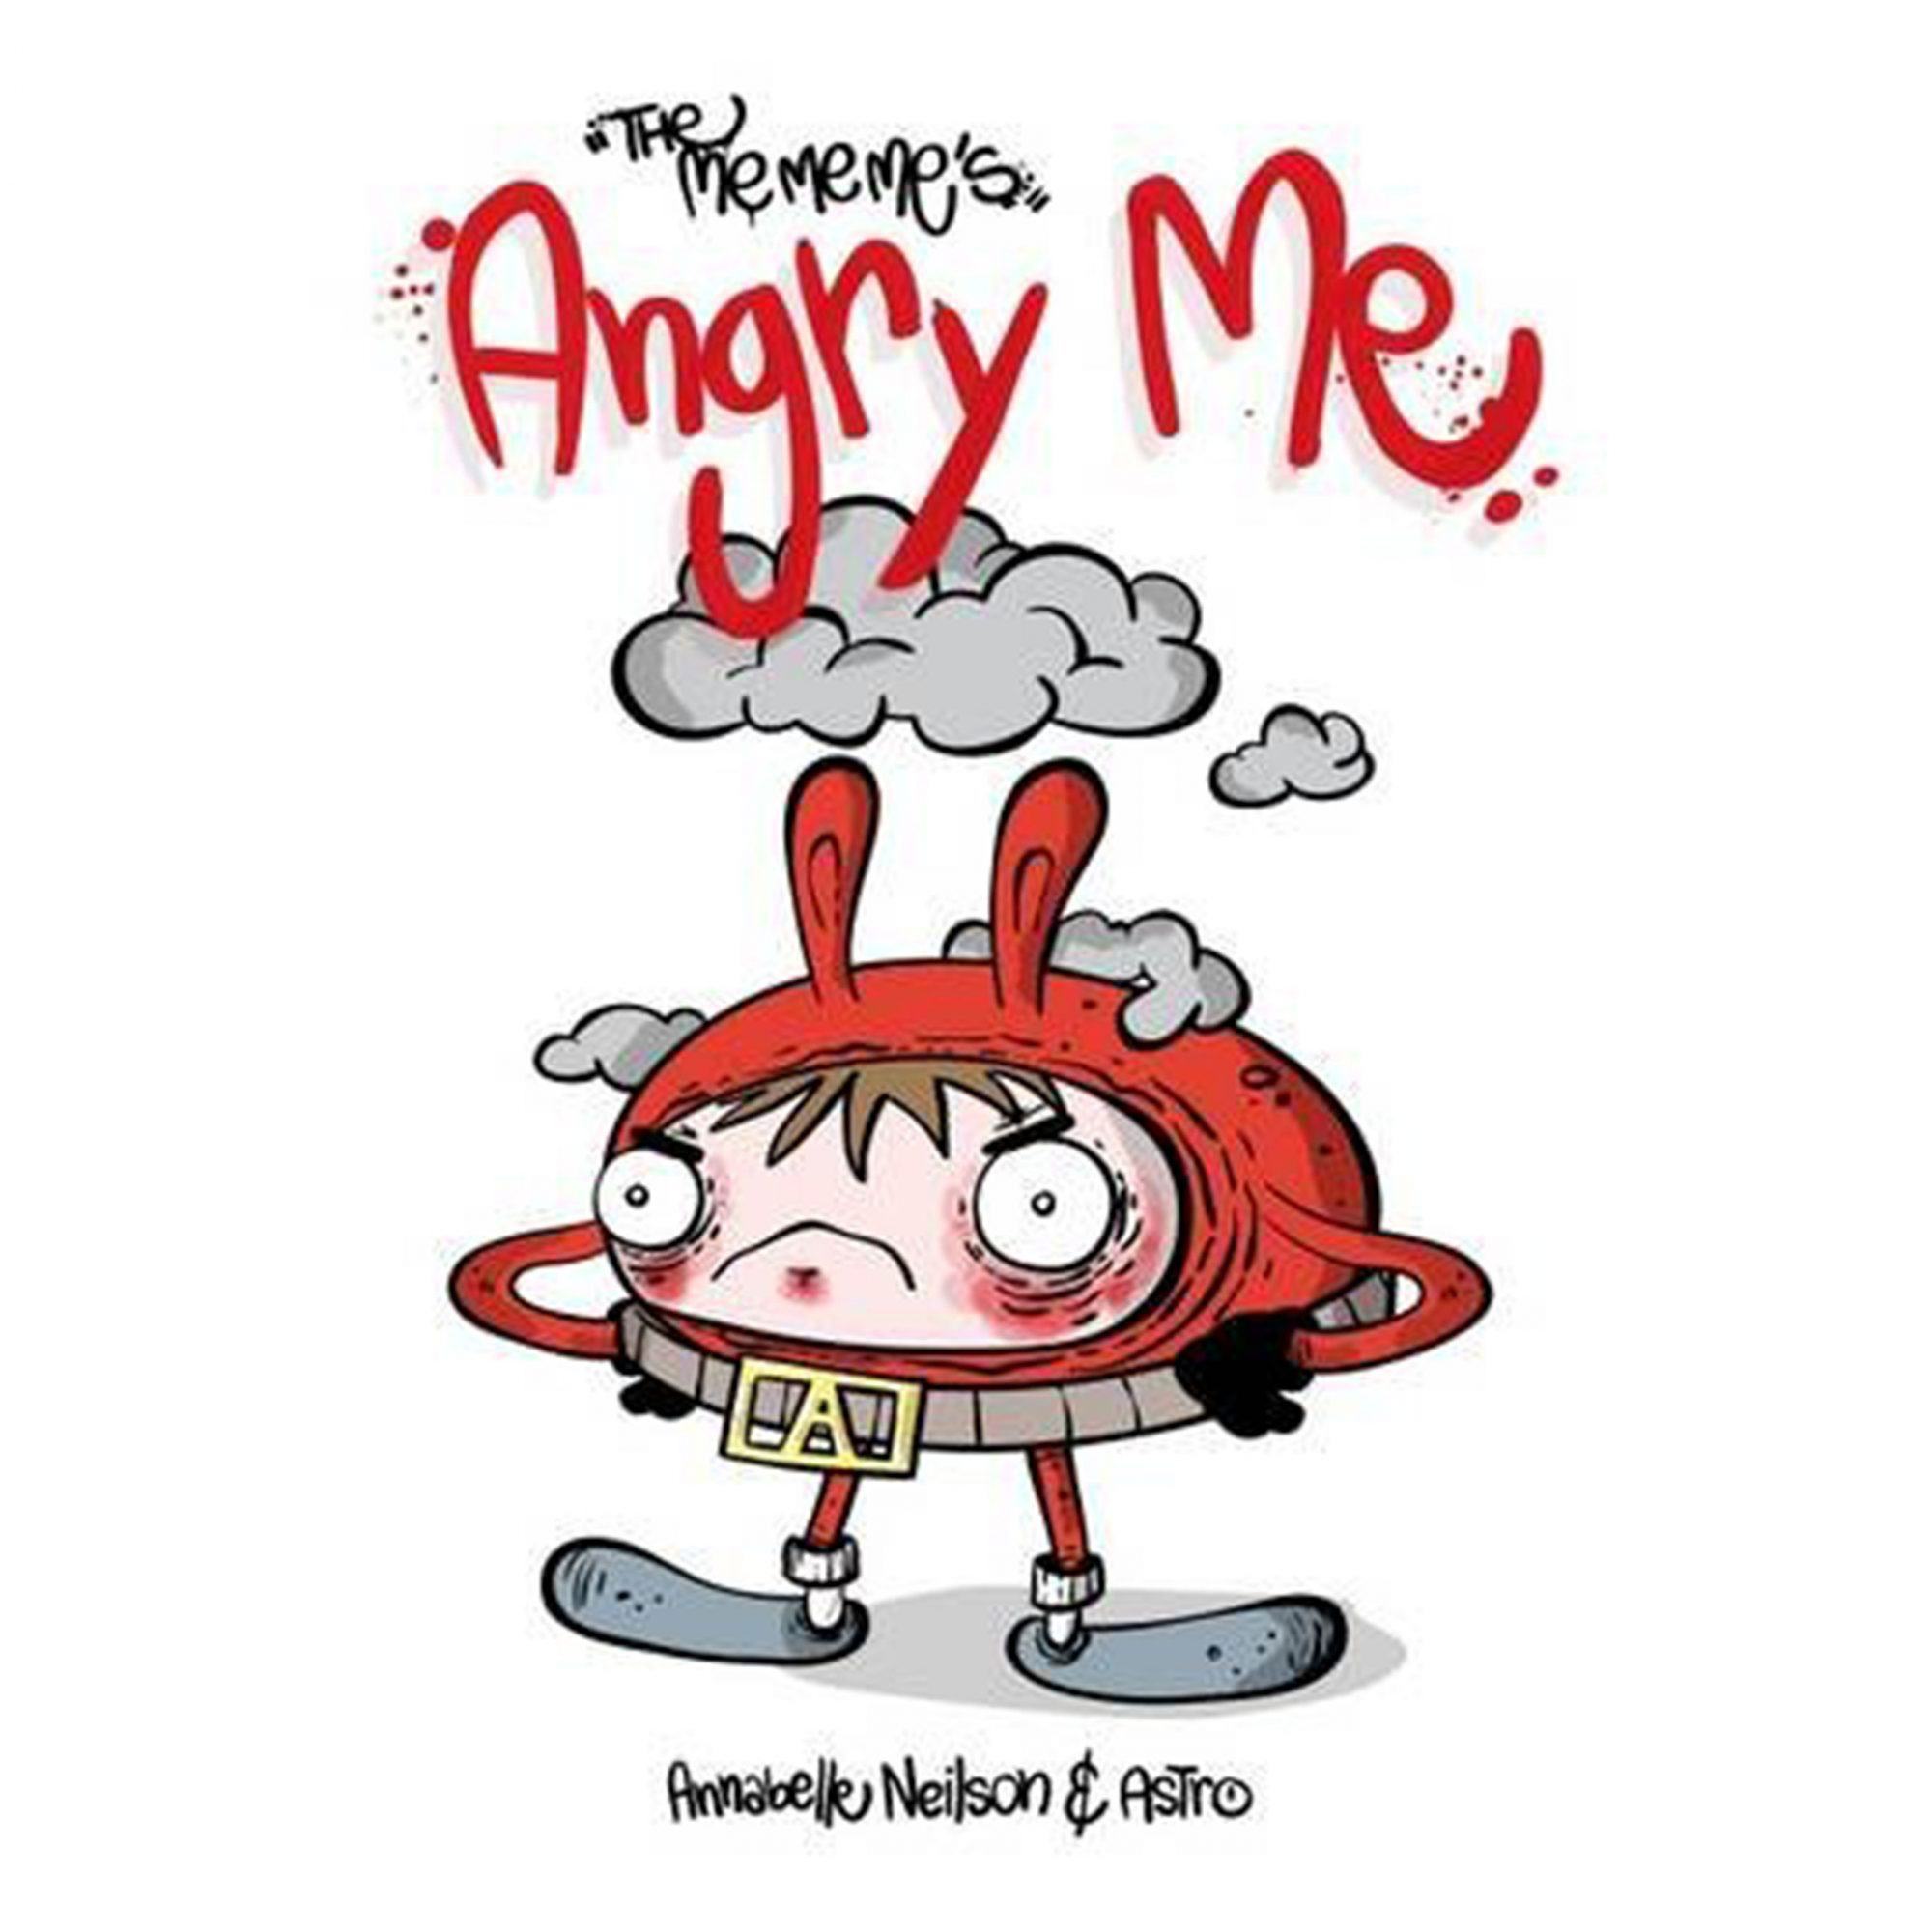 The Me Me Me's: Angry Me Anabelle Neilson life in photosCredit: Amazon